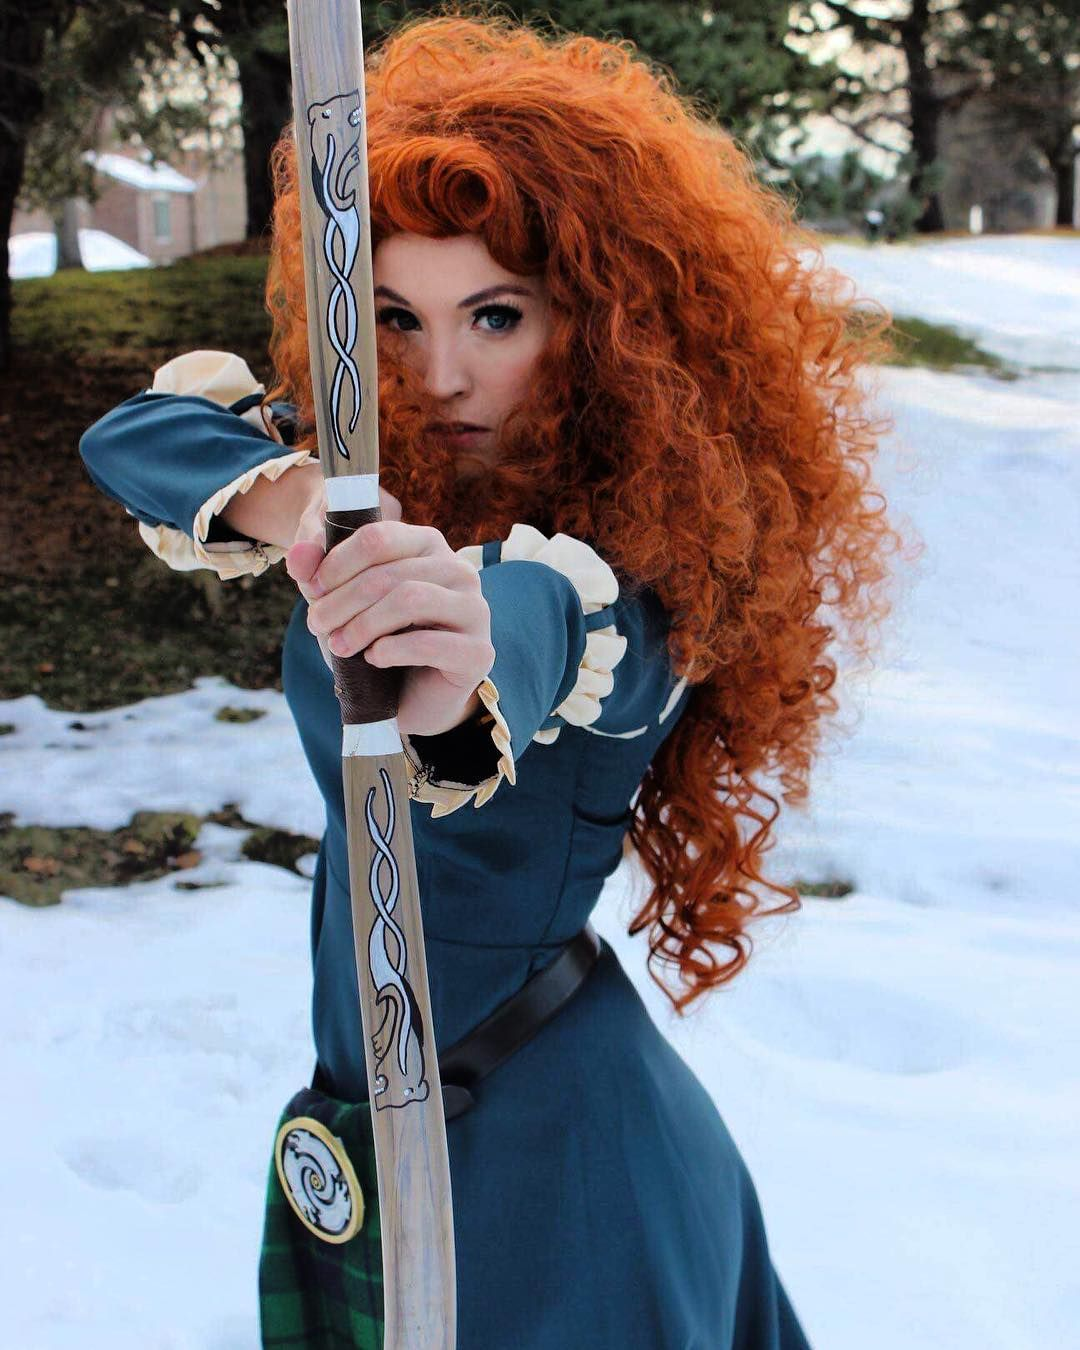 Lots Of Inspiration Diy Makeup Tutorials And All Accessories You Need To Create Your Own Diy Merida Costu Merida Costume Merida Brave Costume Merida Cosplay